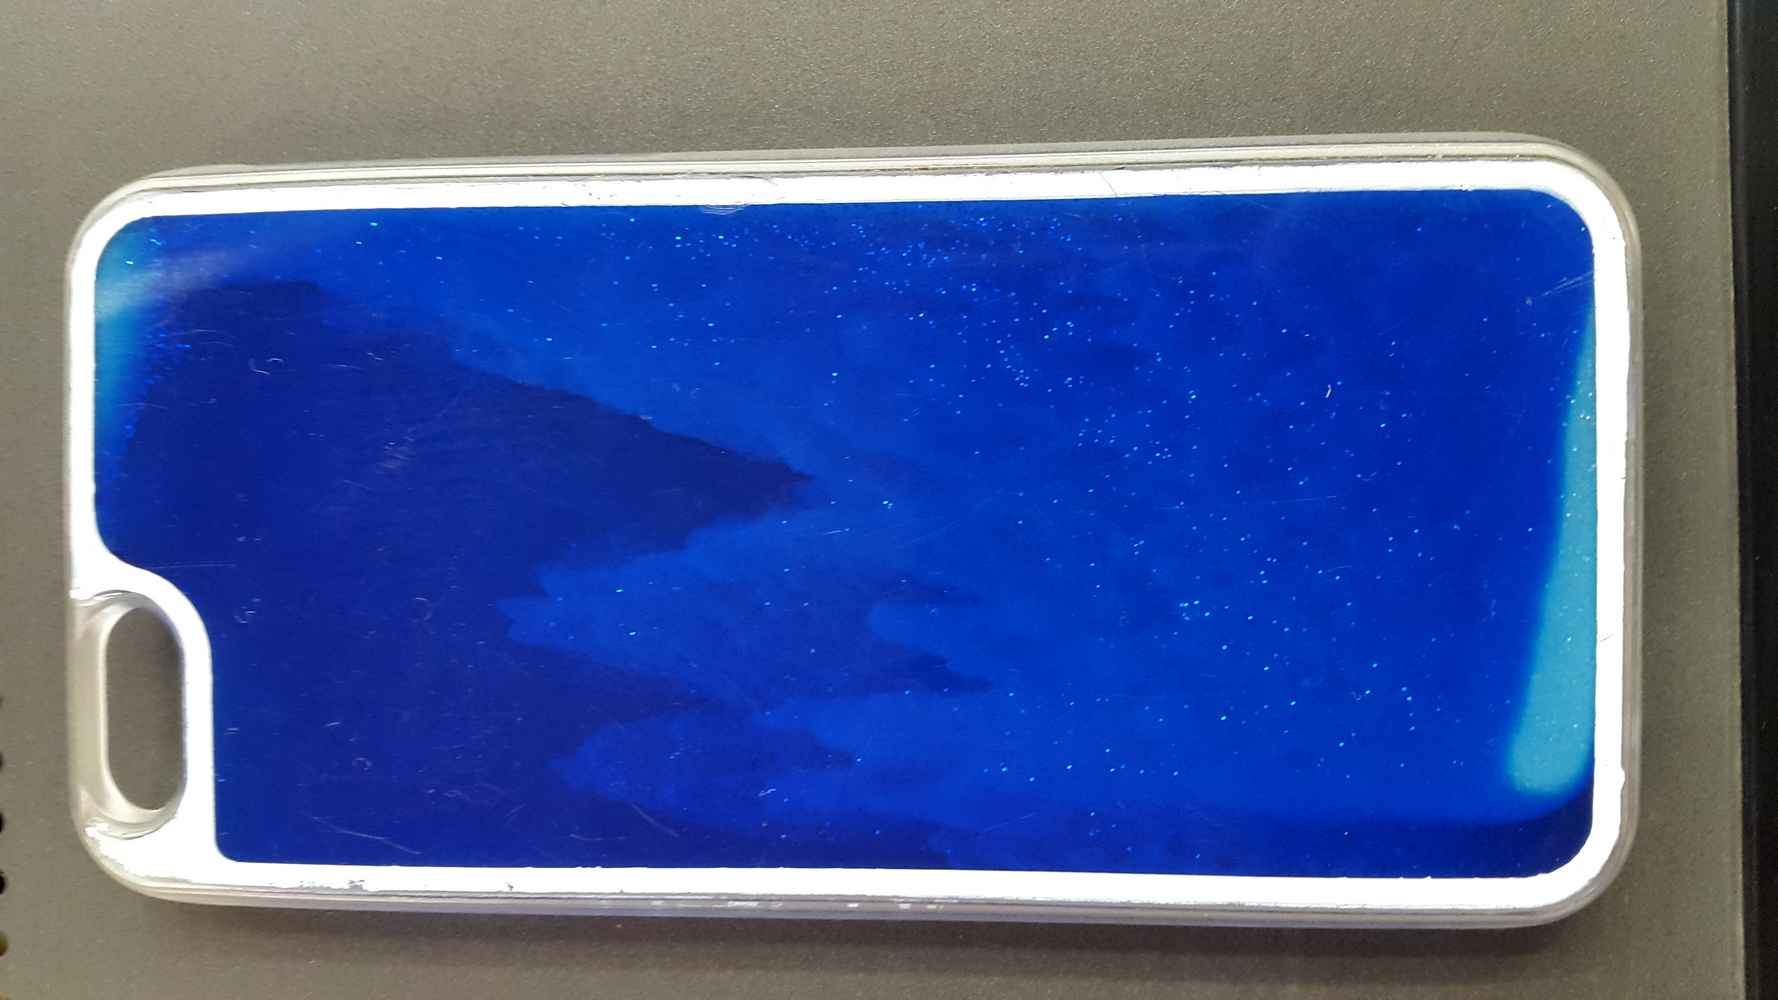 COVER ORIGINALE IPHONE 6 CON CASCATA BRILLANTINI